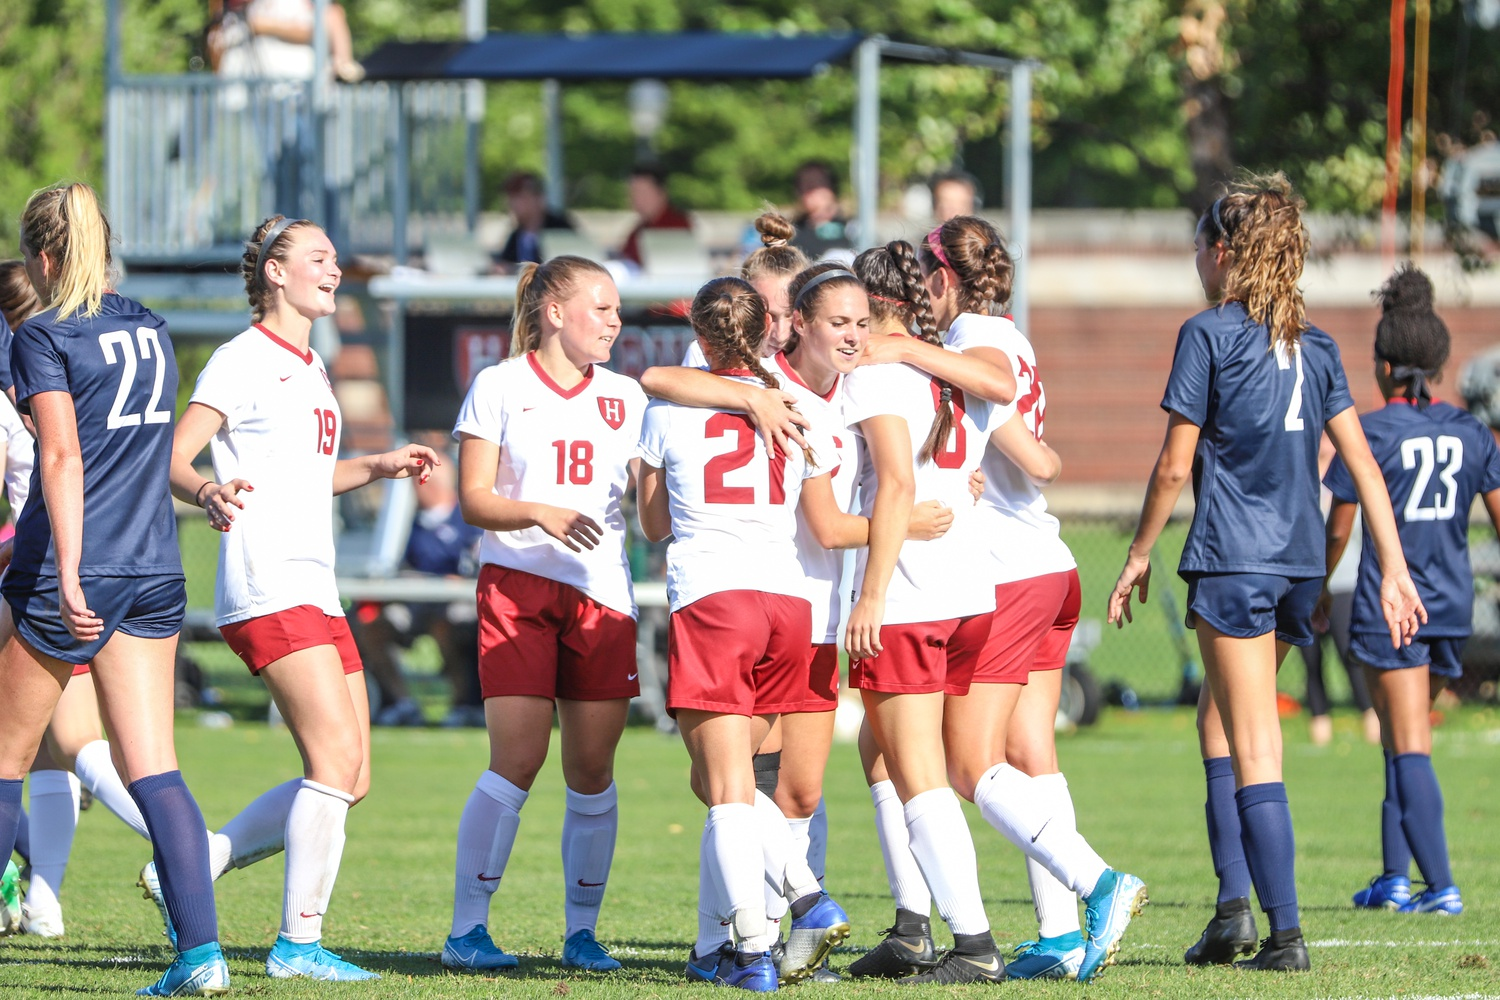 Schenk and teammates celebrate seconds after a goal by then-first-year Gabby DelPico (#21) in the 71st minute against Penn on Sept. 28, 2019. The strike would end up putting Harvard on top 1-0 in its first Ivy League conference game of the season.